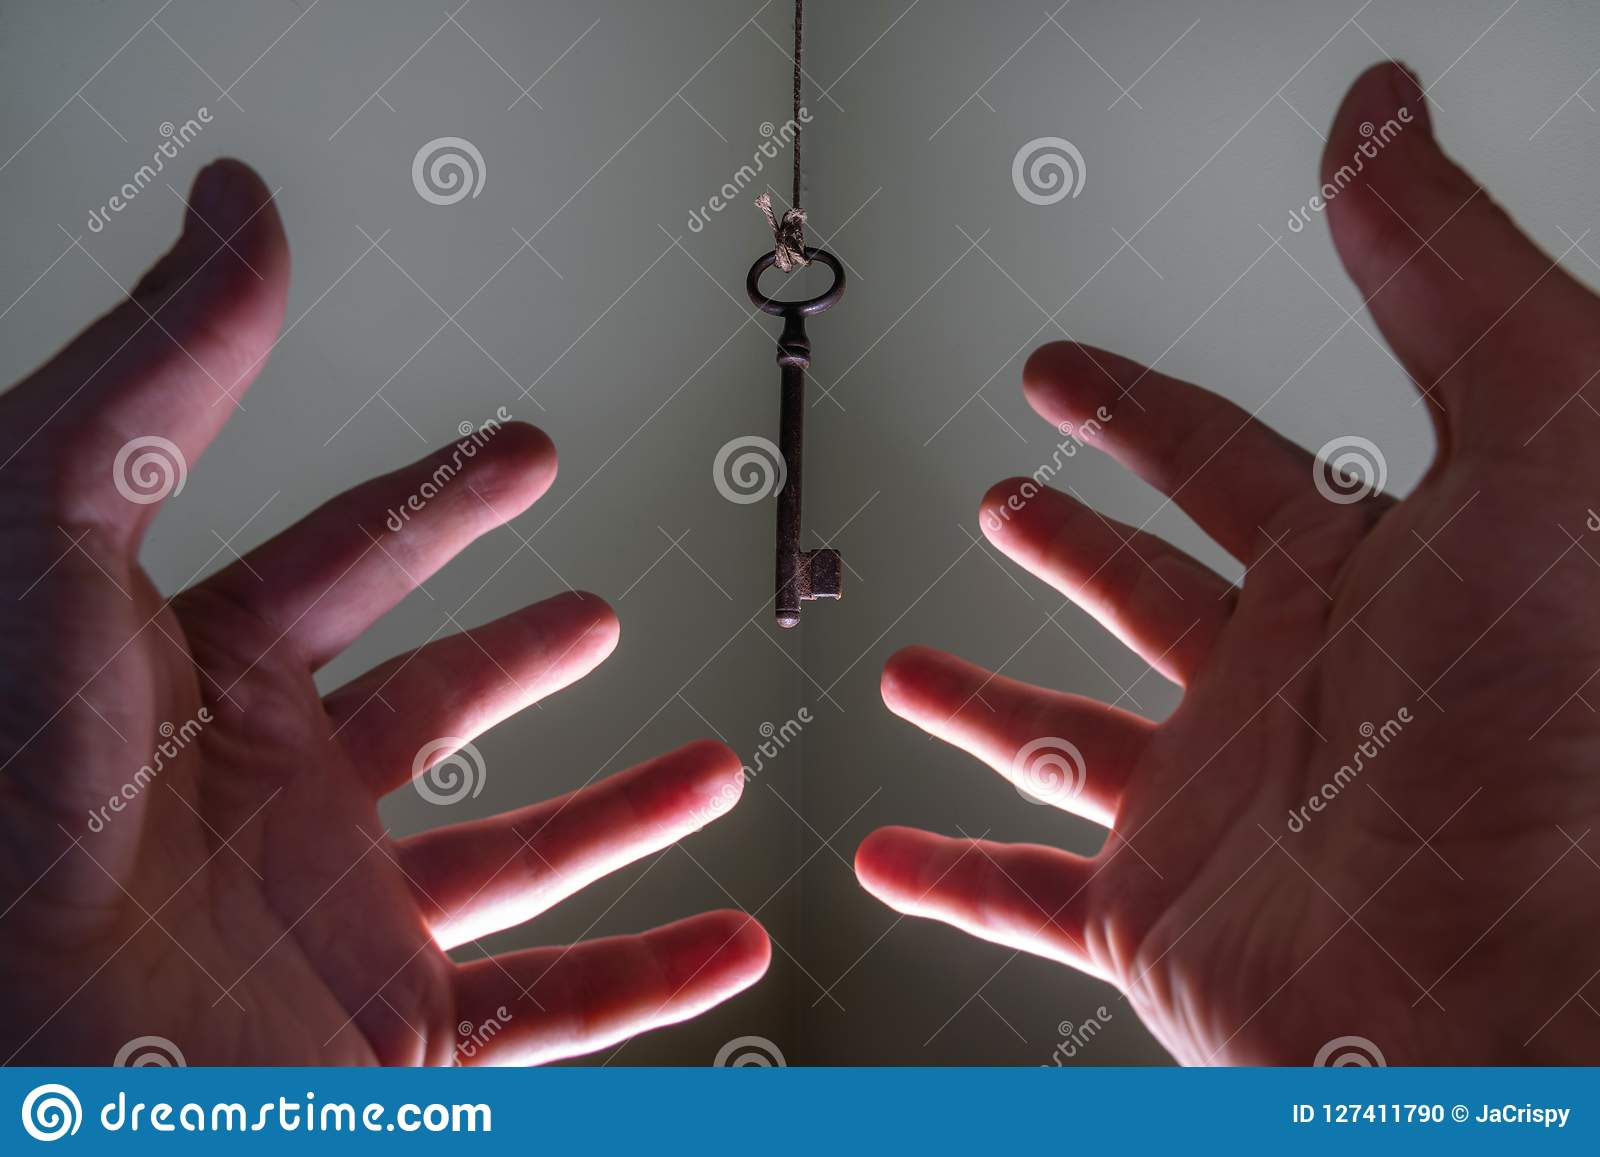 People hands reaching for vintage key hanging on a string. Business success freedom concept concept for aspirations, achievement